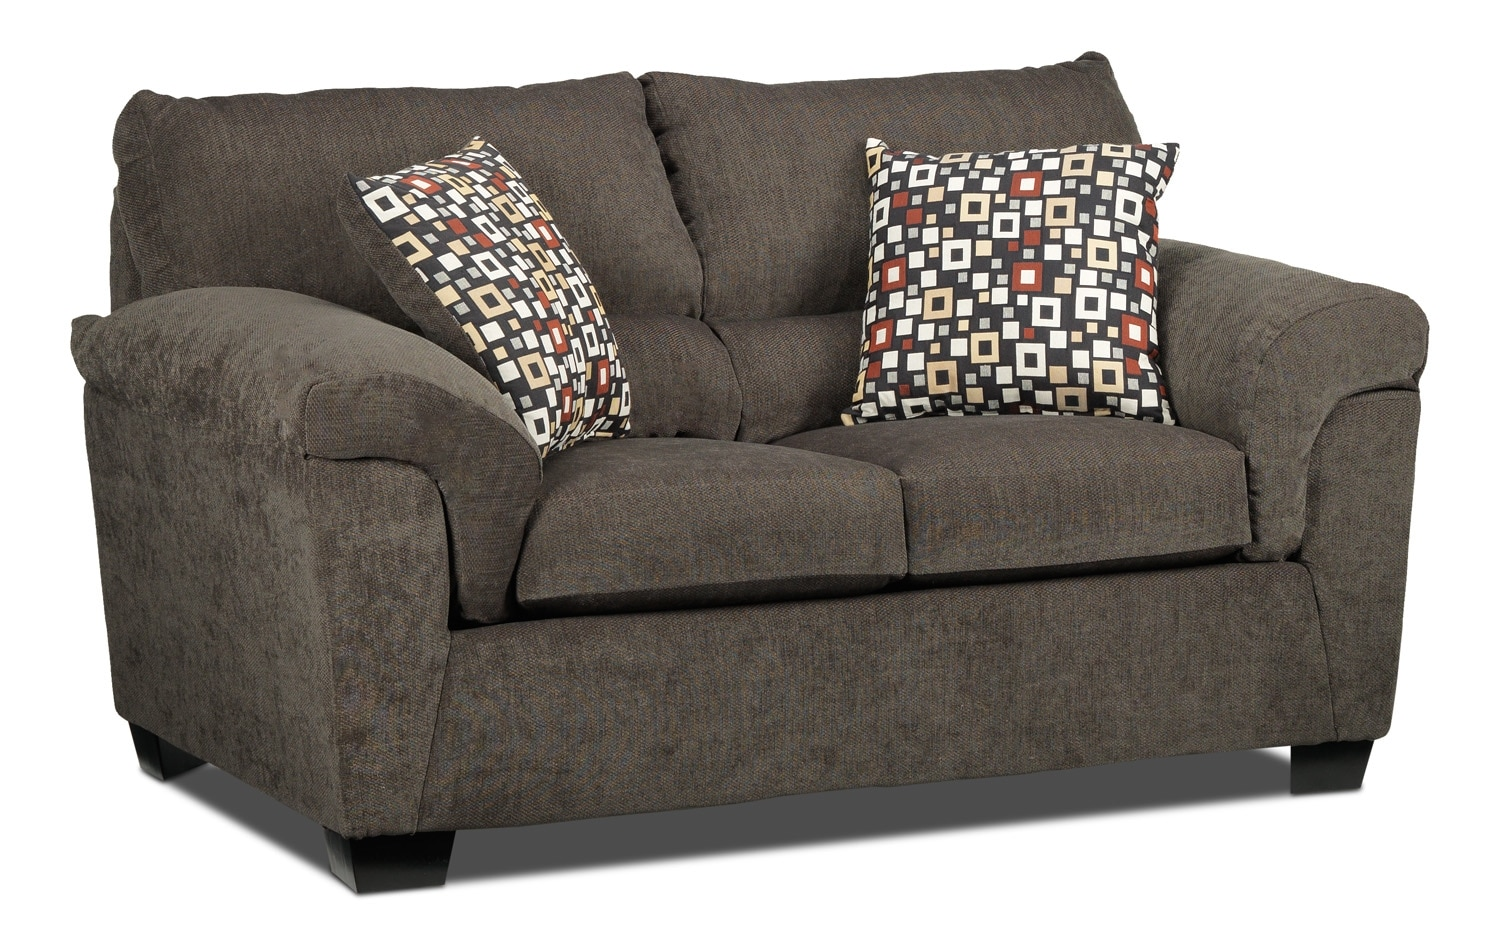 Living Room Furniture - Bliss Loveseat - Charcoal